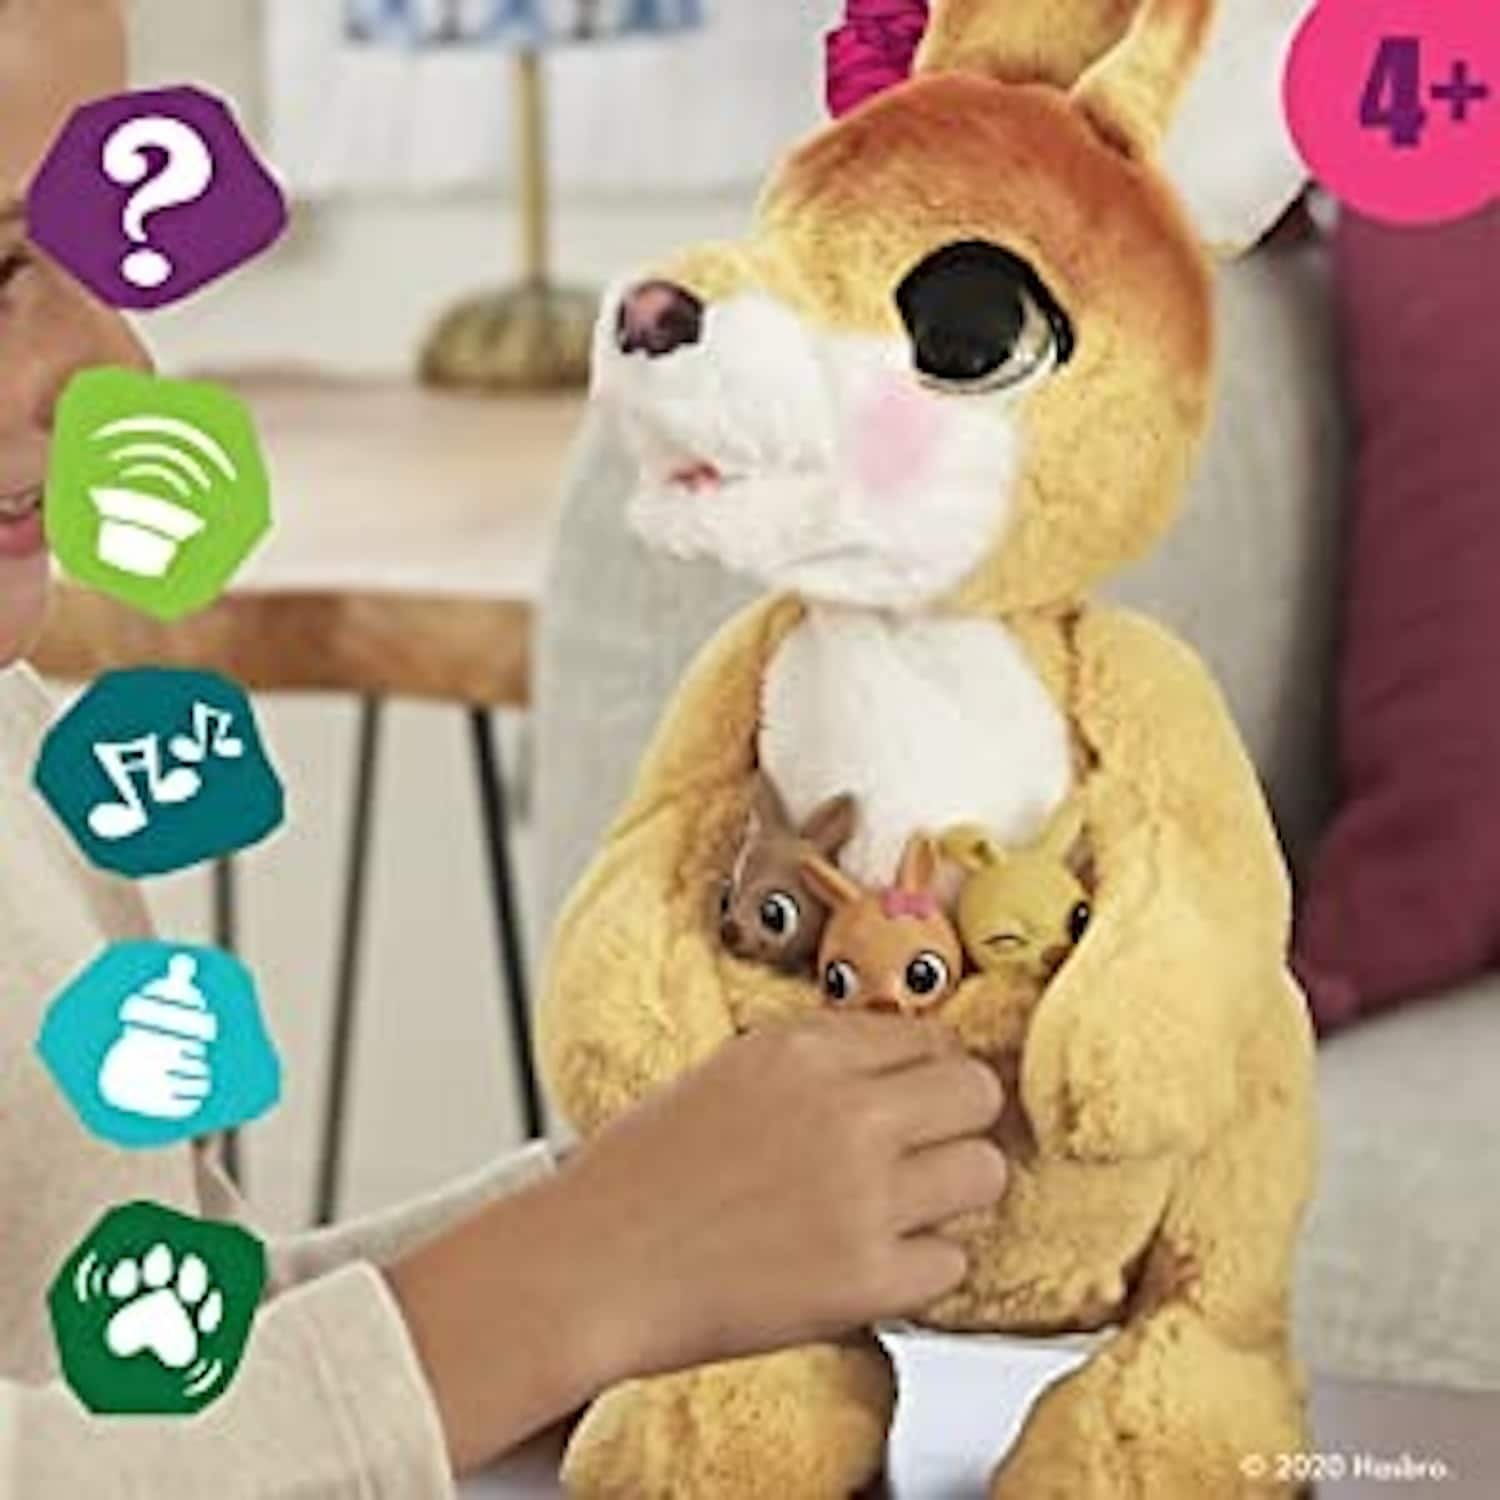 furReal Mama Josie The Kangaroo Interactive Pet Toy w/ 70+ Sounds & Reactions $19.74 + FS w/ Prime | $19.74 + 2.5% Slickdeals Cashback (PC Req'd) at Target + FS w/ RedCard